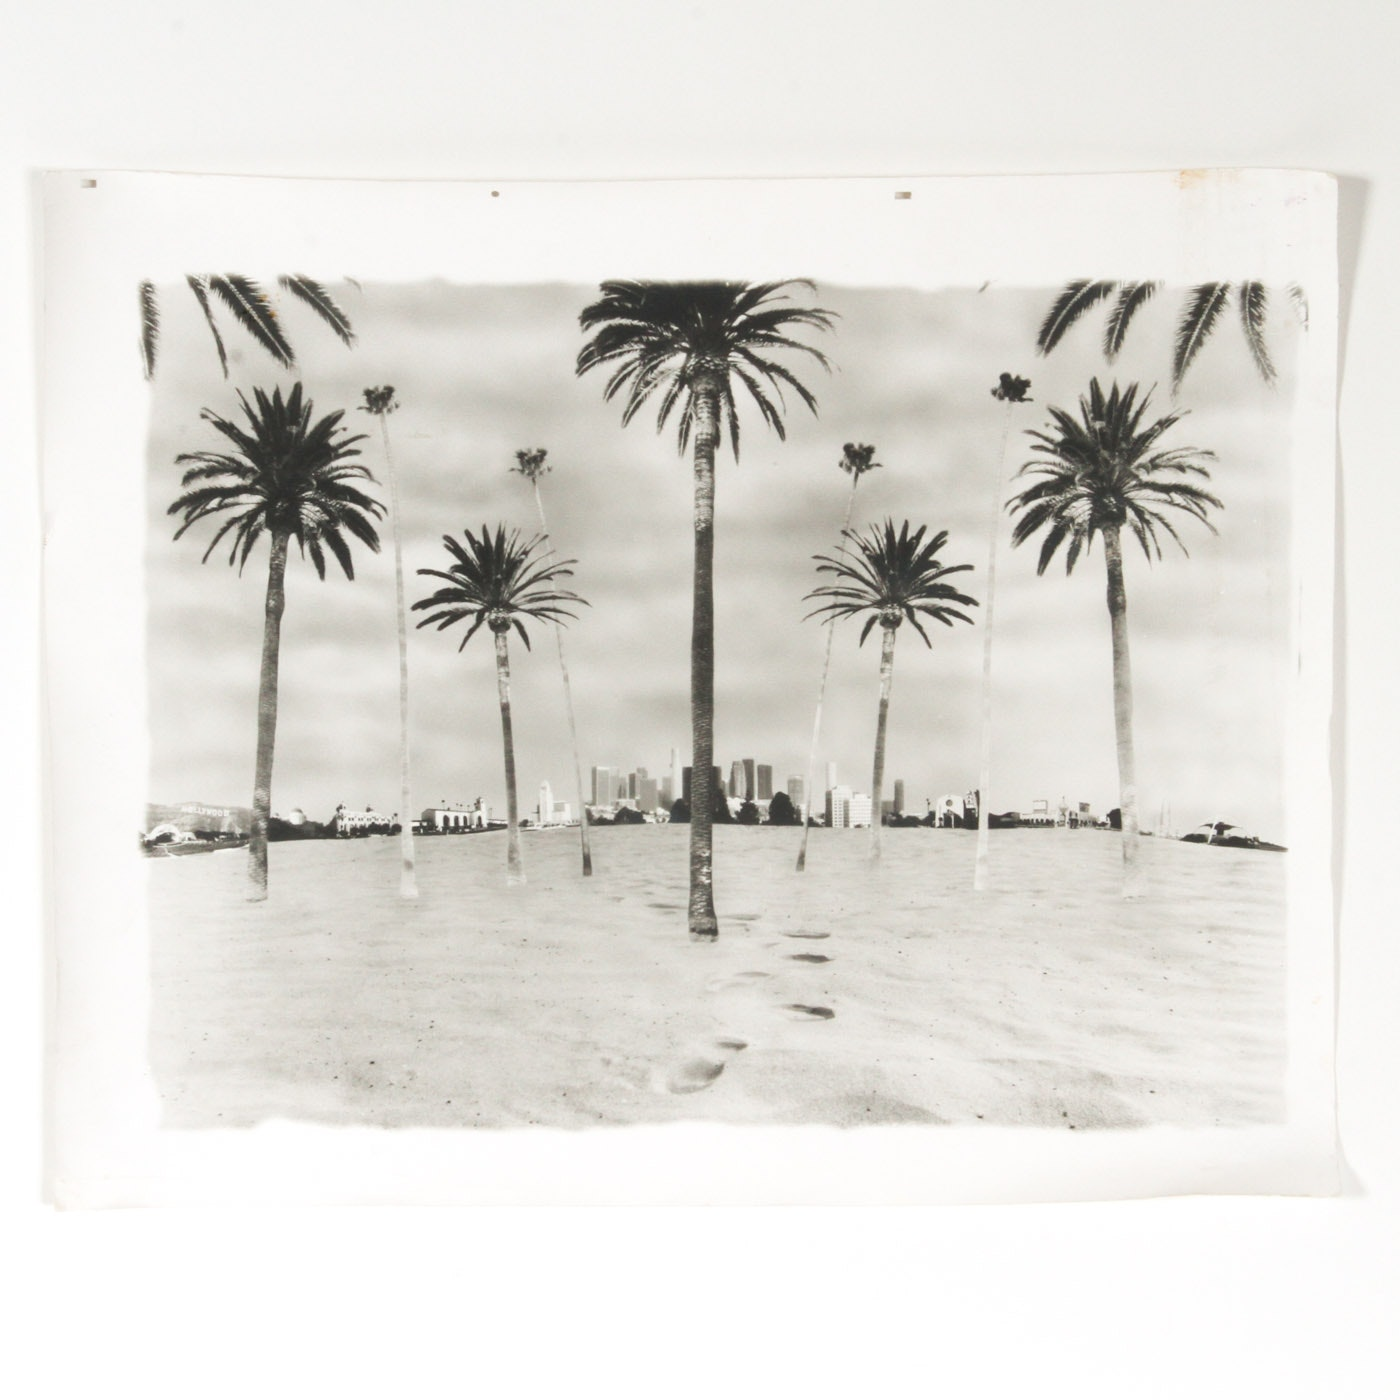 Black and White Photo Collage of Iconic Los Angeles Structures